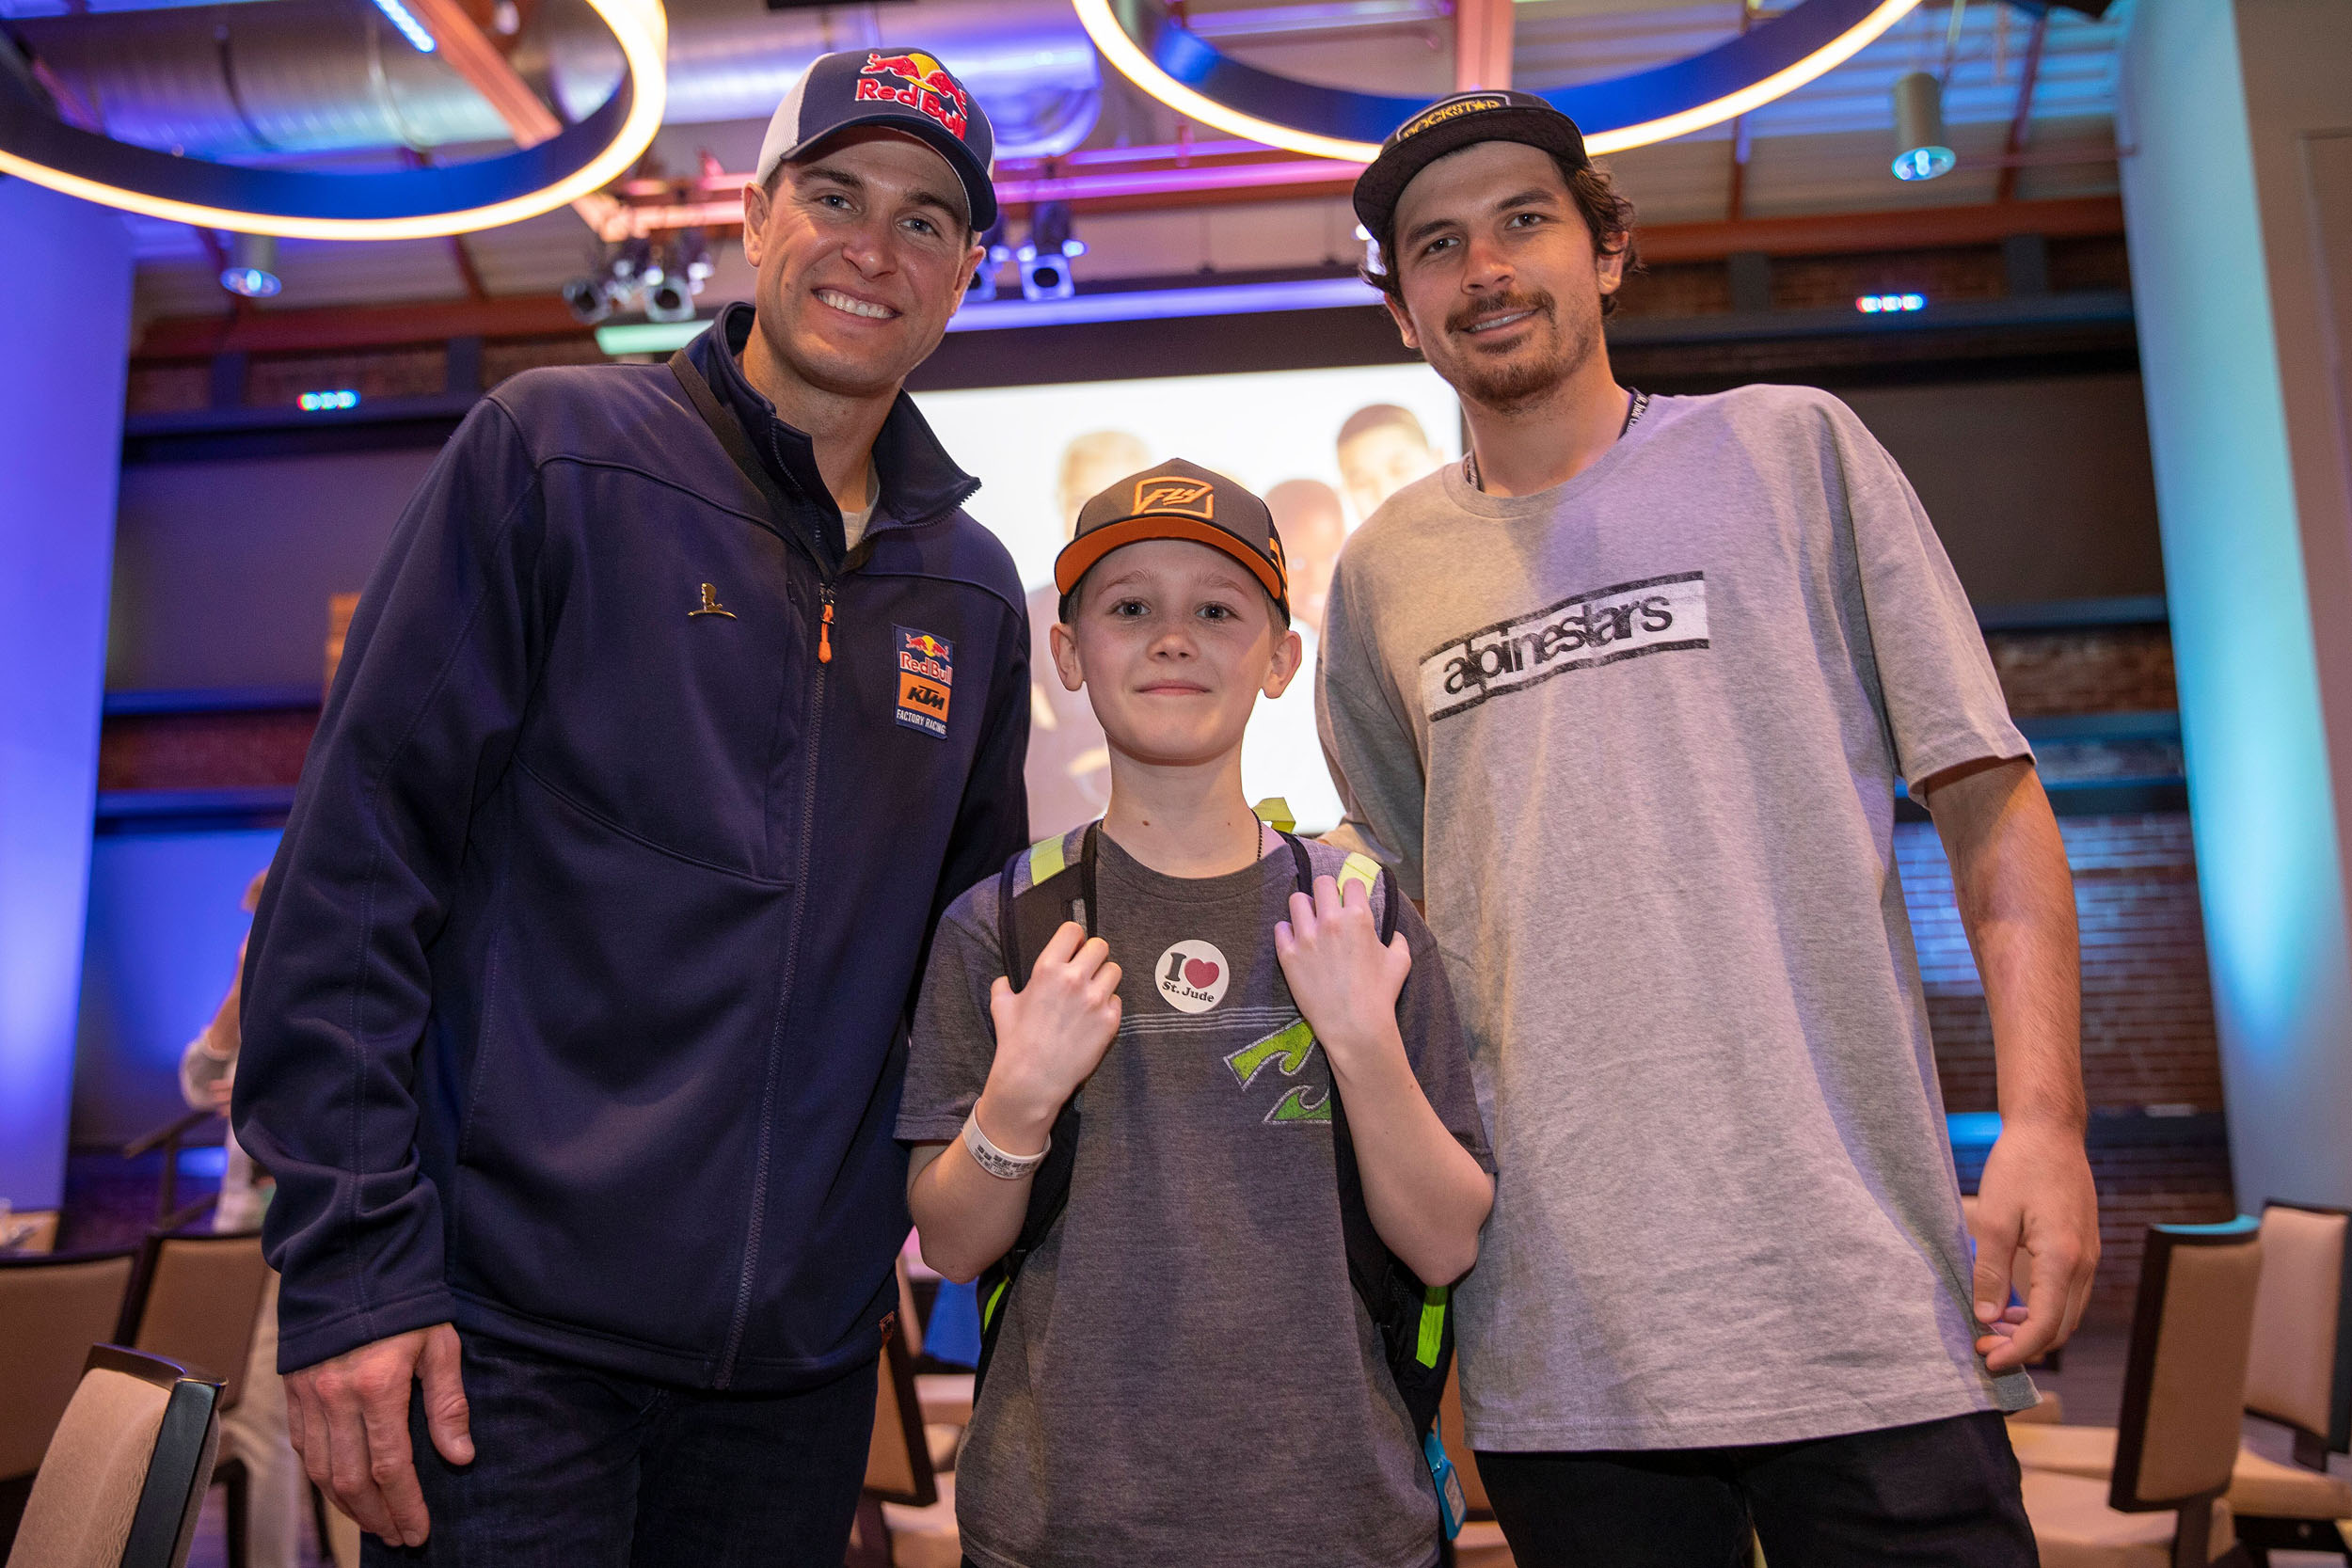 Ryan Dungey and Jason Anderson attending the patient and family reception at St. Jude Children's Research Hospital in Memphis